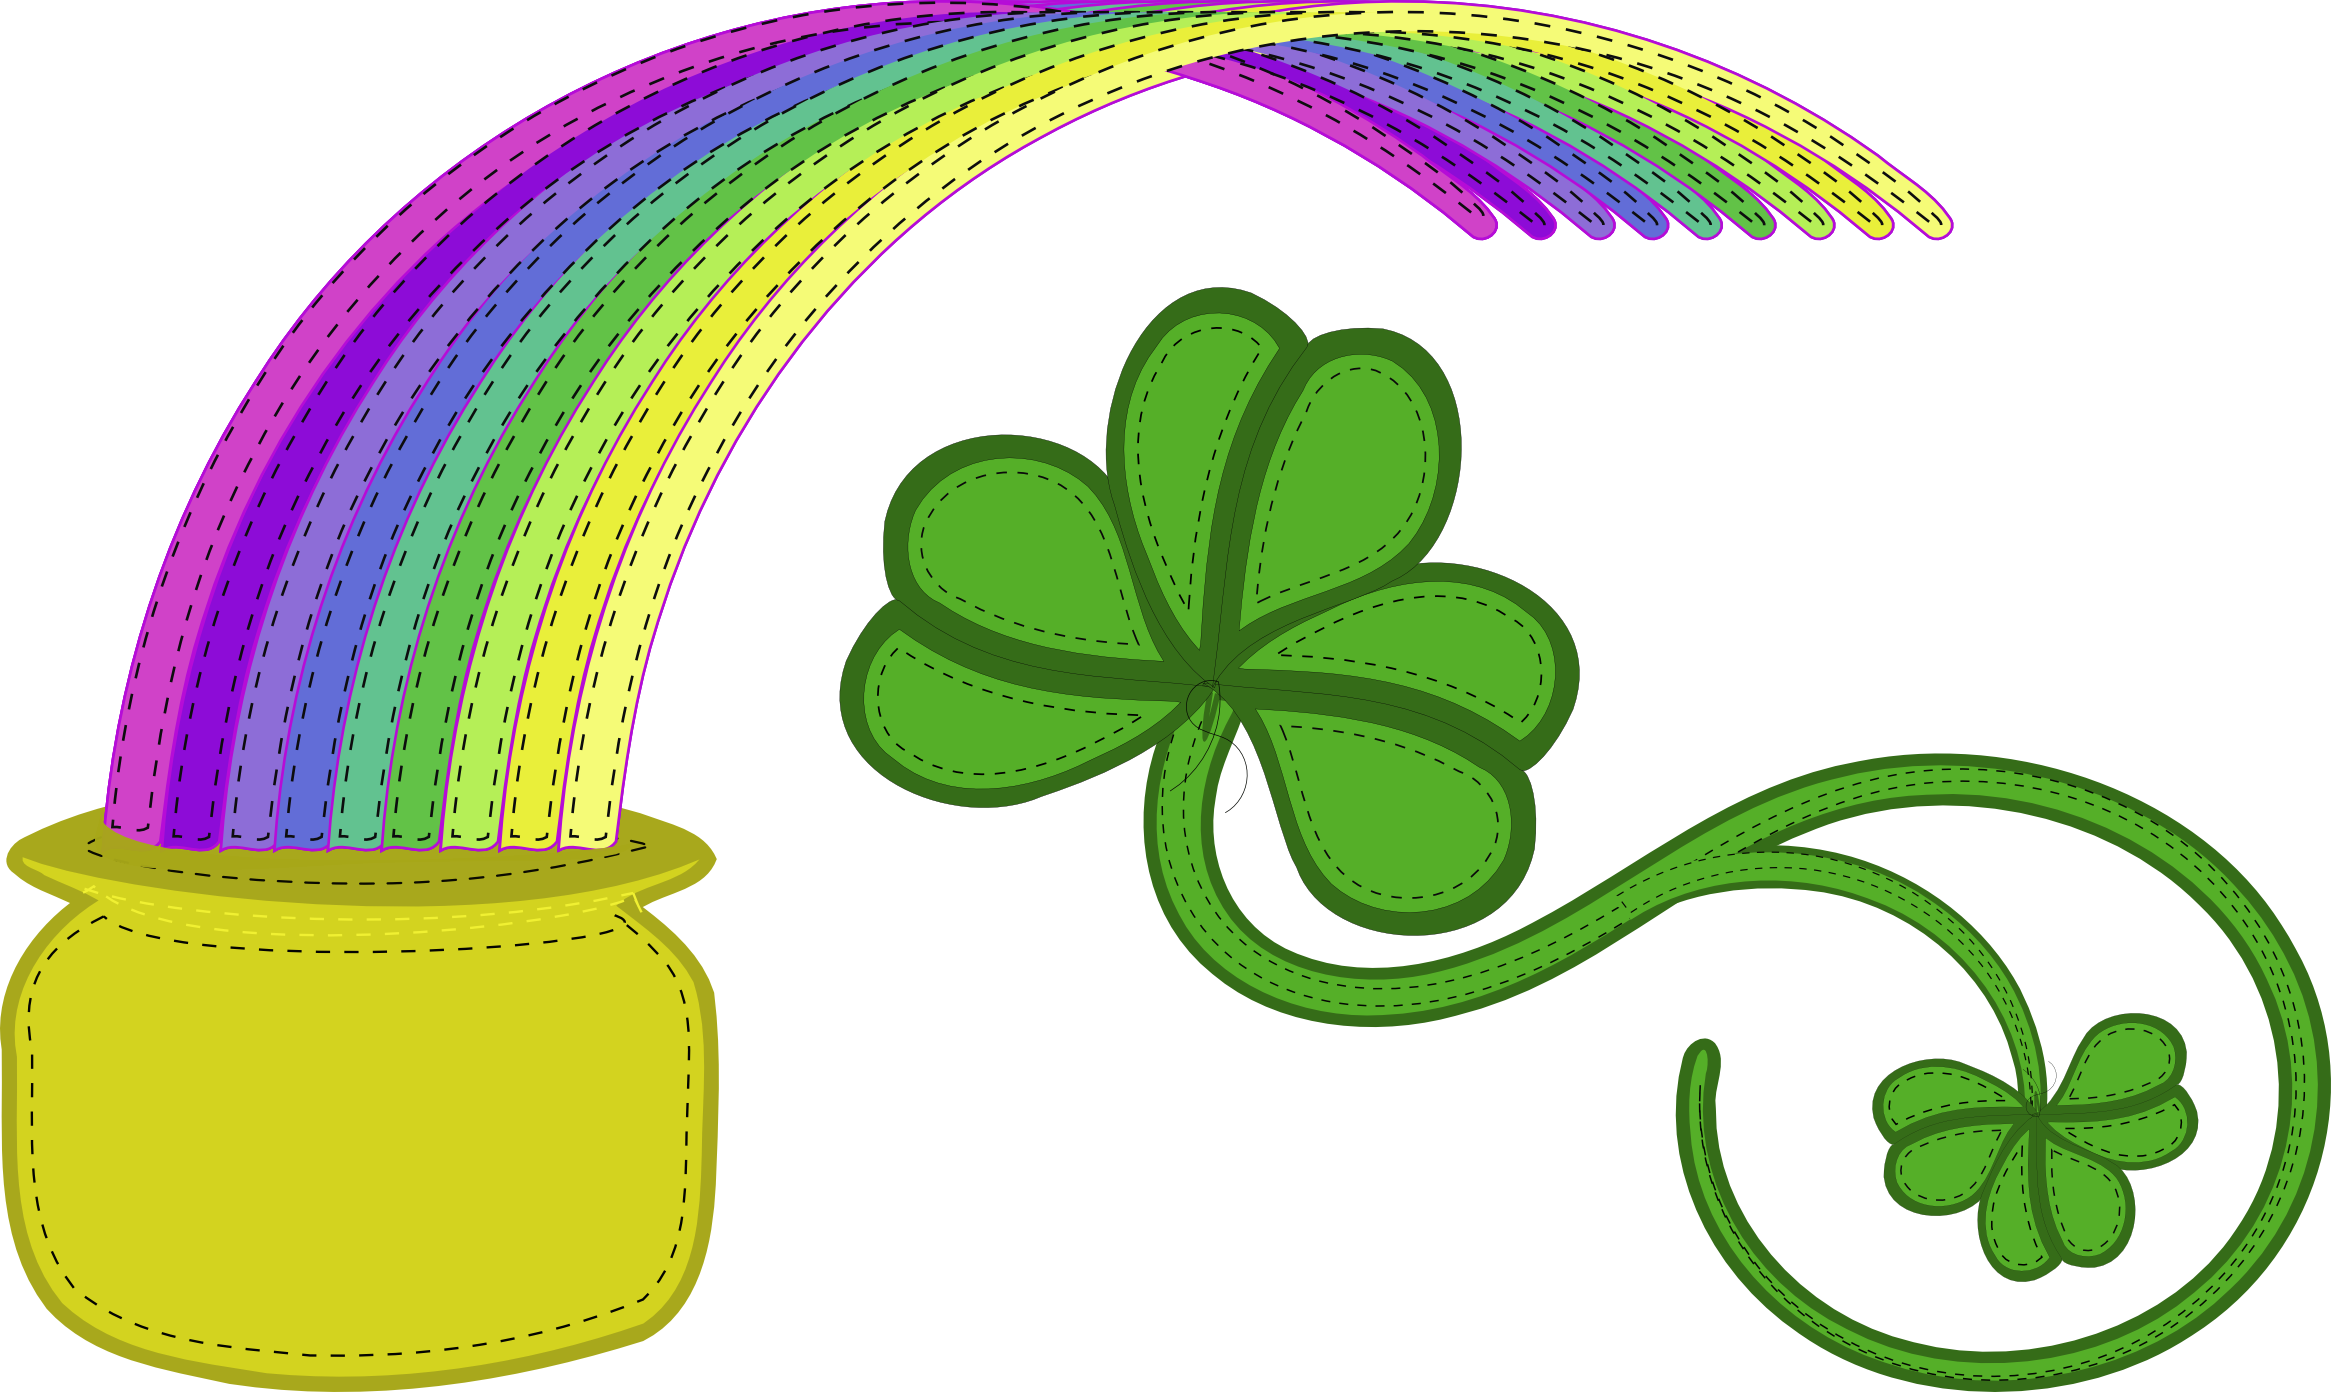 royalty free download Free Happy St Patricks Day Clipart